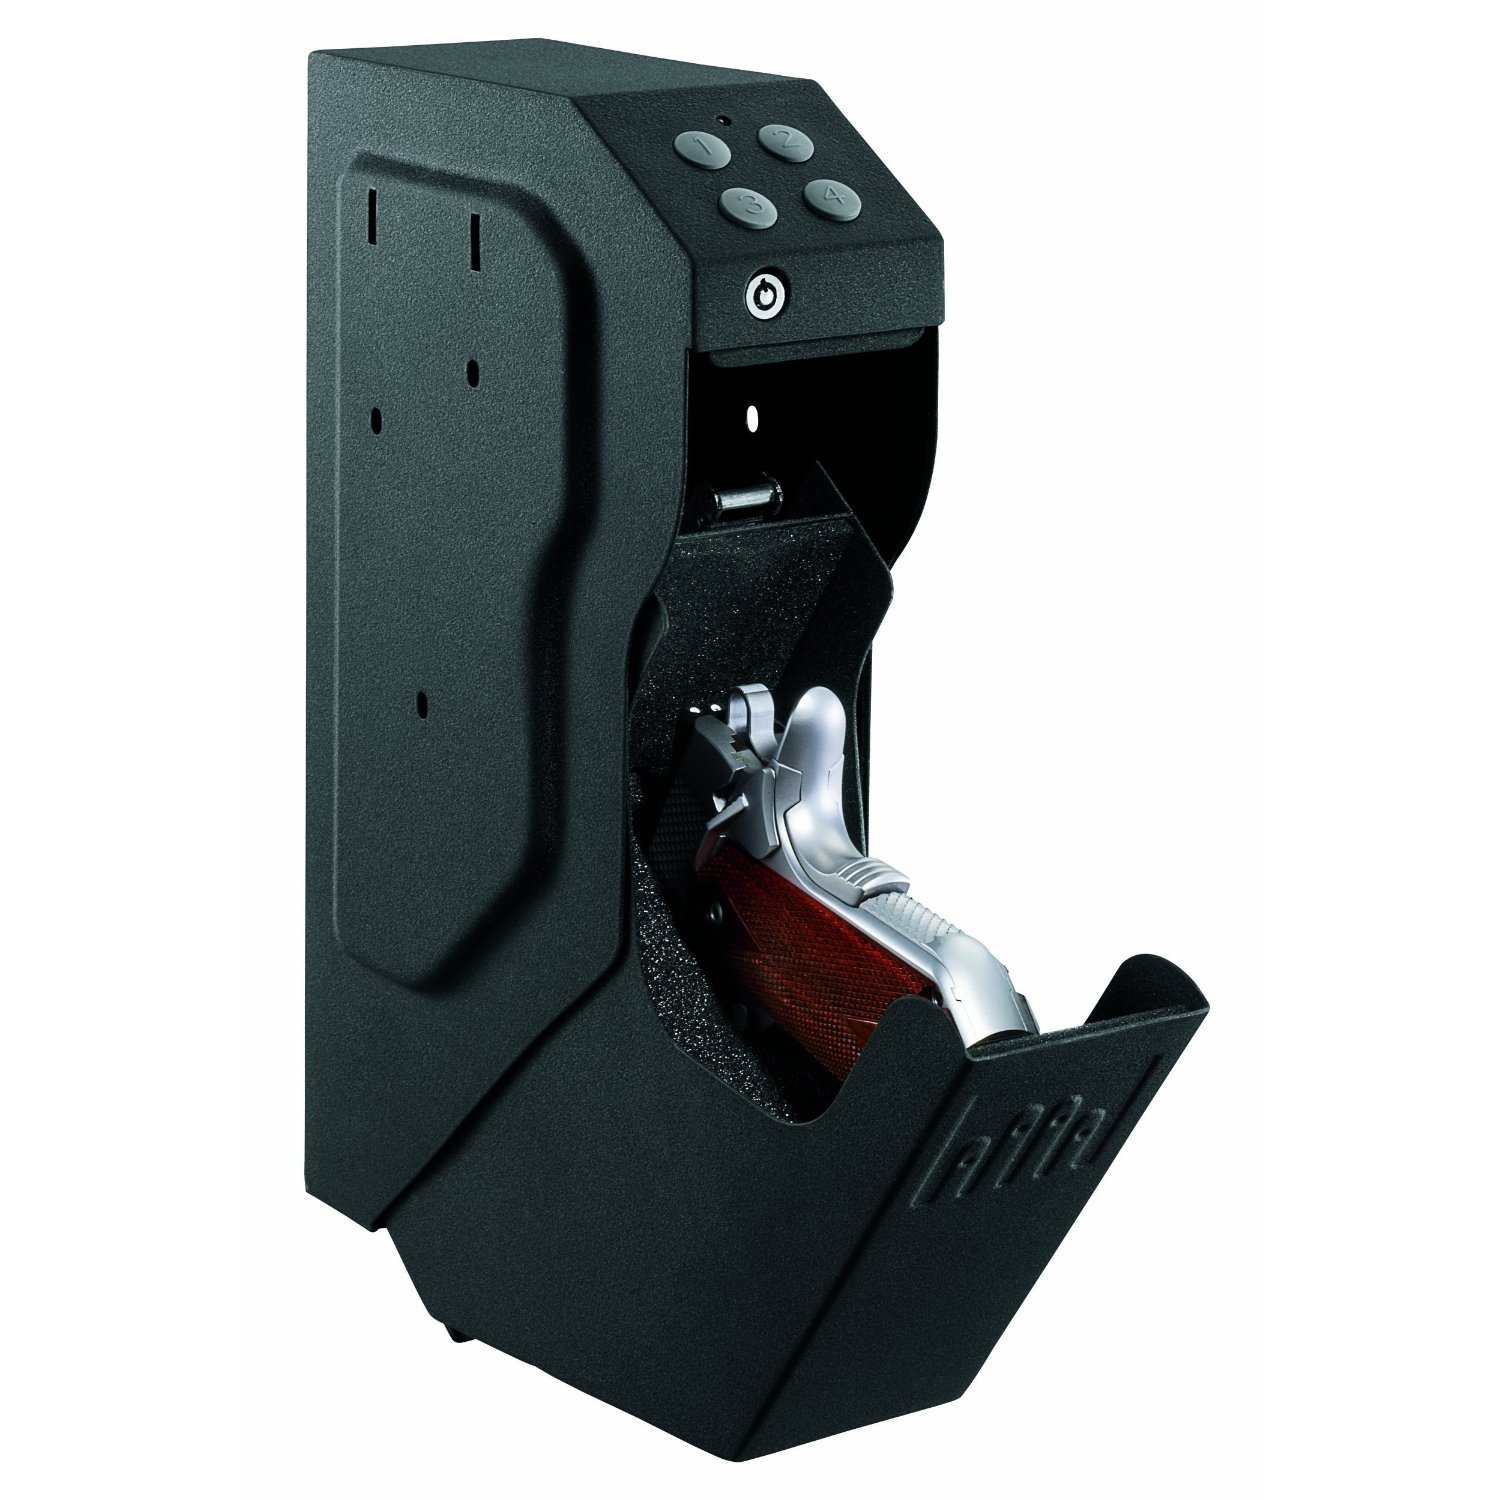 Quick Draw Handgun Pistol Gun Safe with Digital Keypad & Override Key, GSVGS13526 :  Keep your handgun safe, secure and ready for action with this Fast Draw Handgun Pistol Gun Safe with Digital Keypad & Override Key. Offering a revolutionary design, the SpeedVault is equally as fast as it is discreet. It is the ideal choice for a home or business looking for added security. Backup override key included; Audio and LED low battery warning.